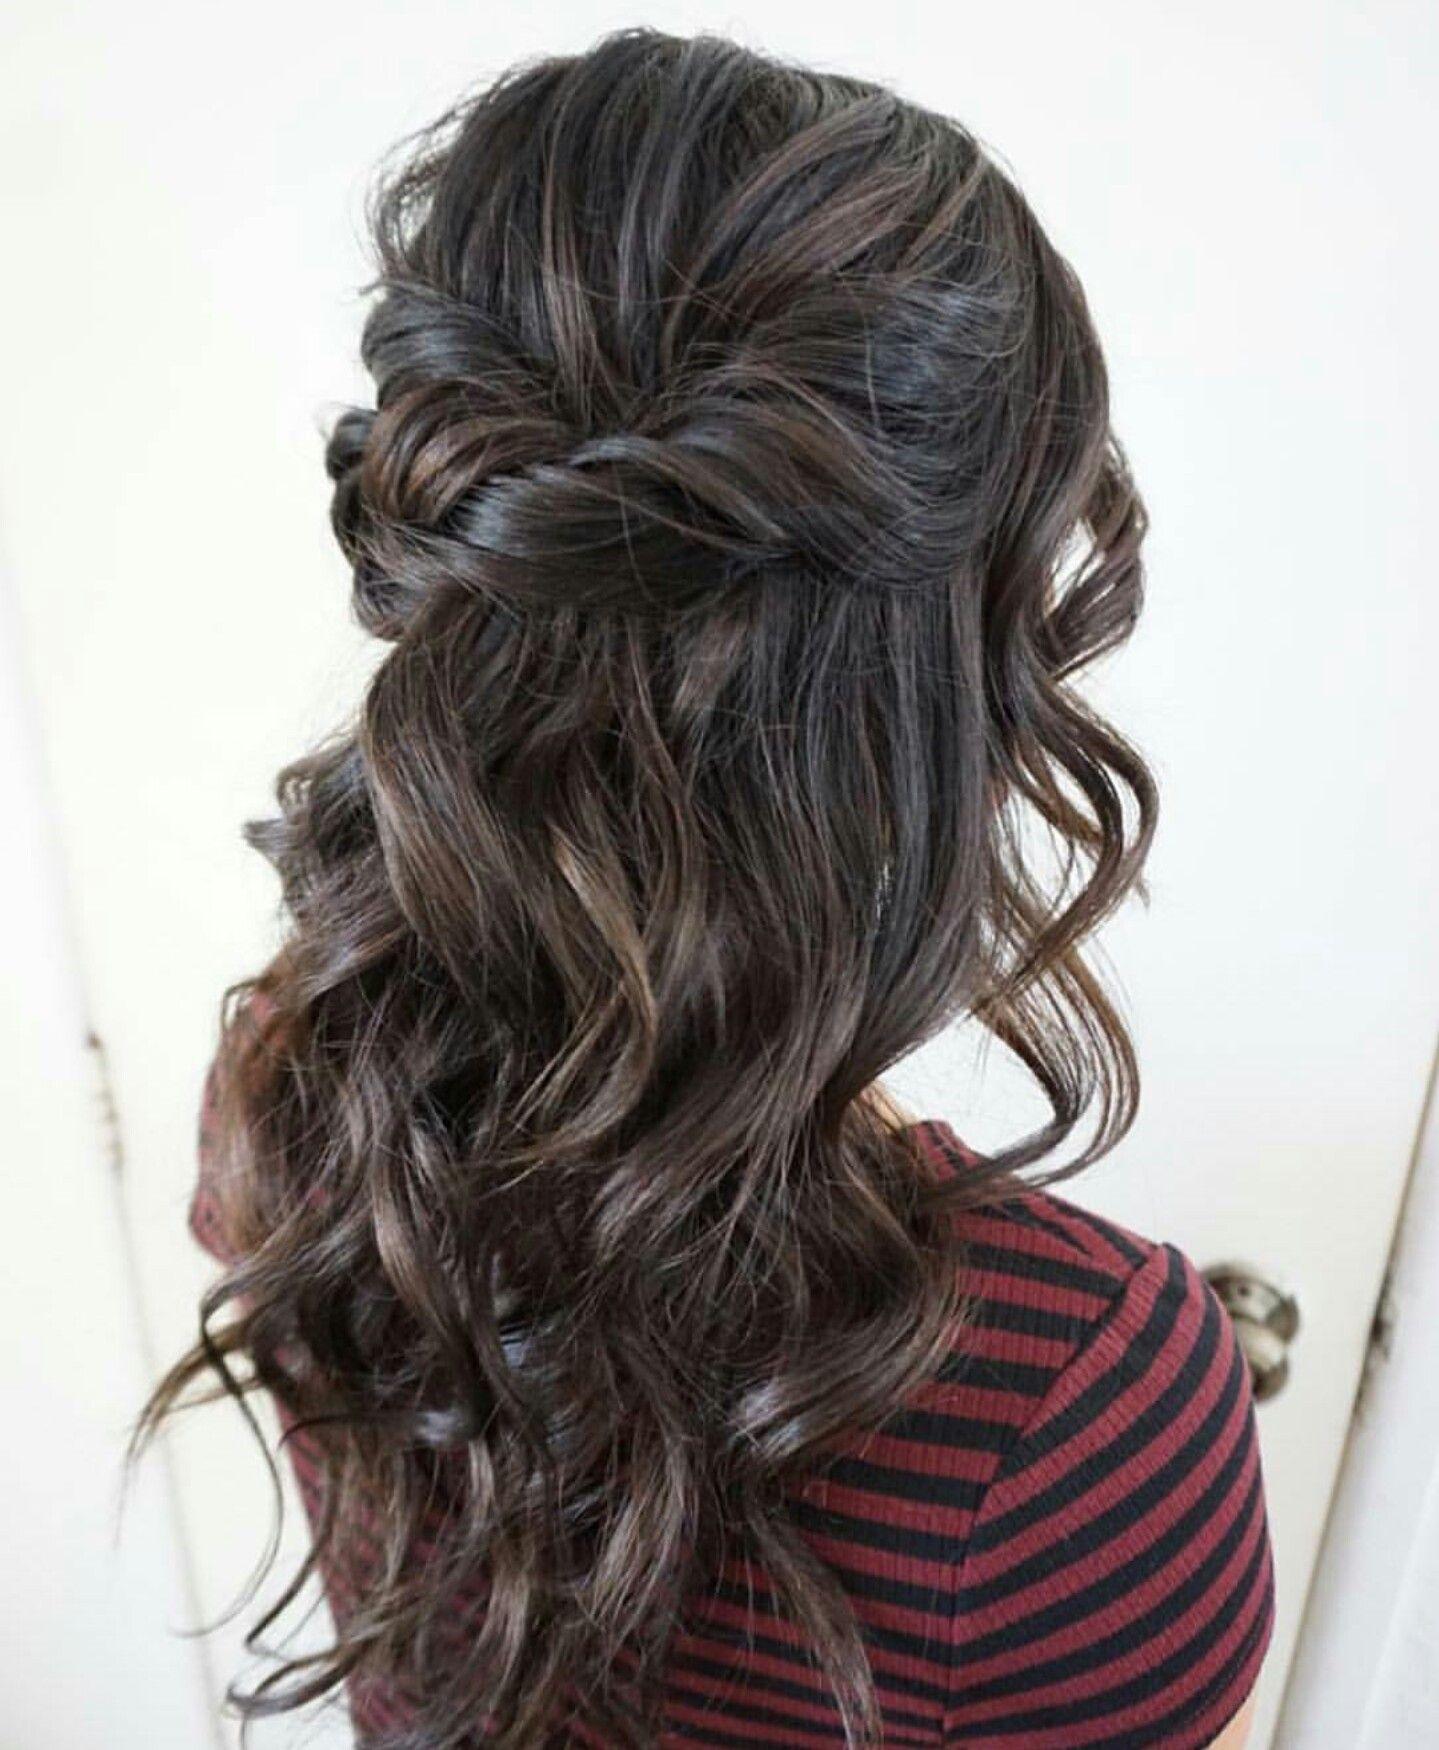 Pin by Eva Hawk on Hair | Pinterest | Wedding Hairstyles ...